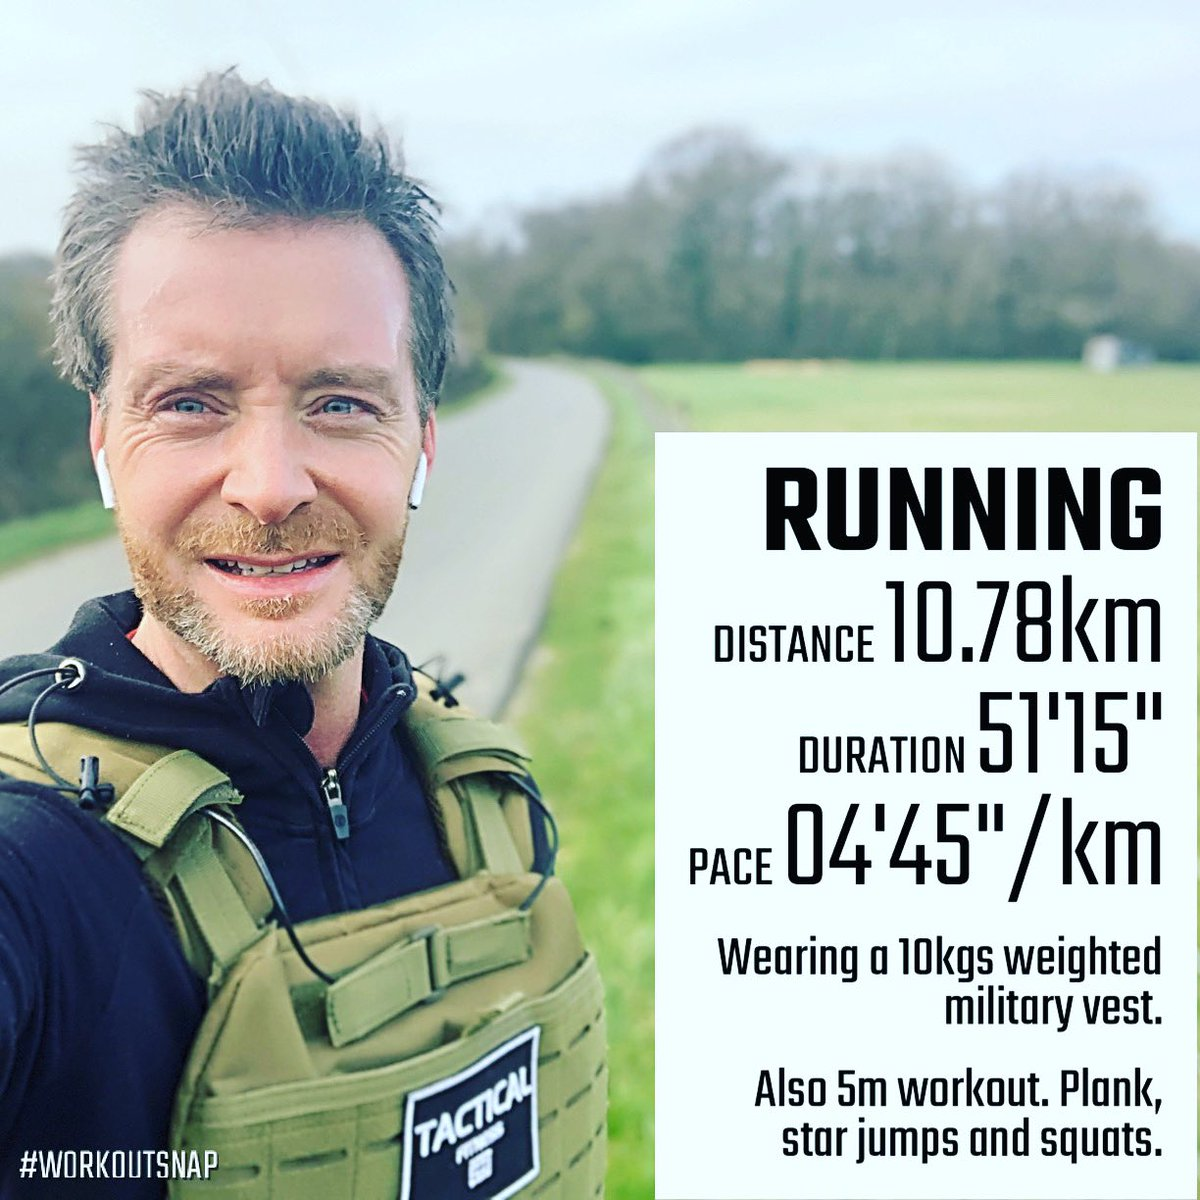 Commit to working on yourself everyday. You have to become obsessed with self development, obsessed with growing your mindset, feeding your mind with positive thoughts everyday. The more you workout the stronger your mind and body become. #mentalhealth #running #ukrunchat #health